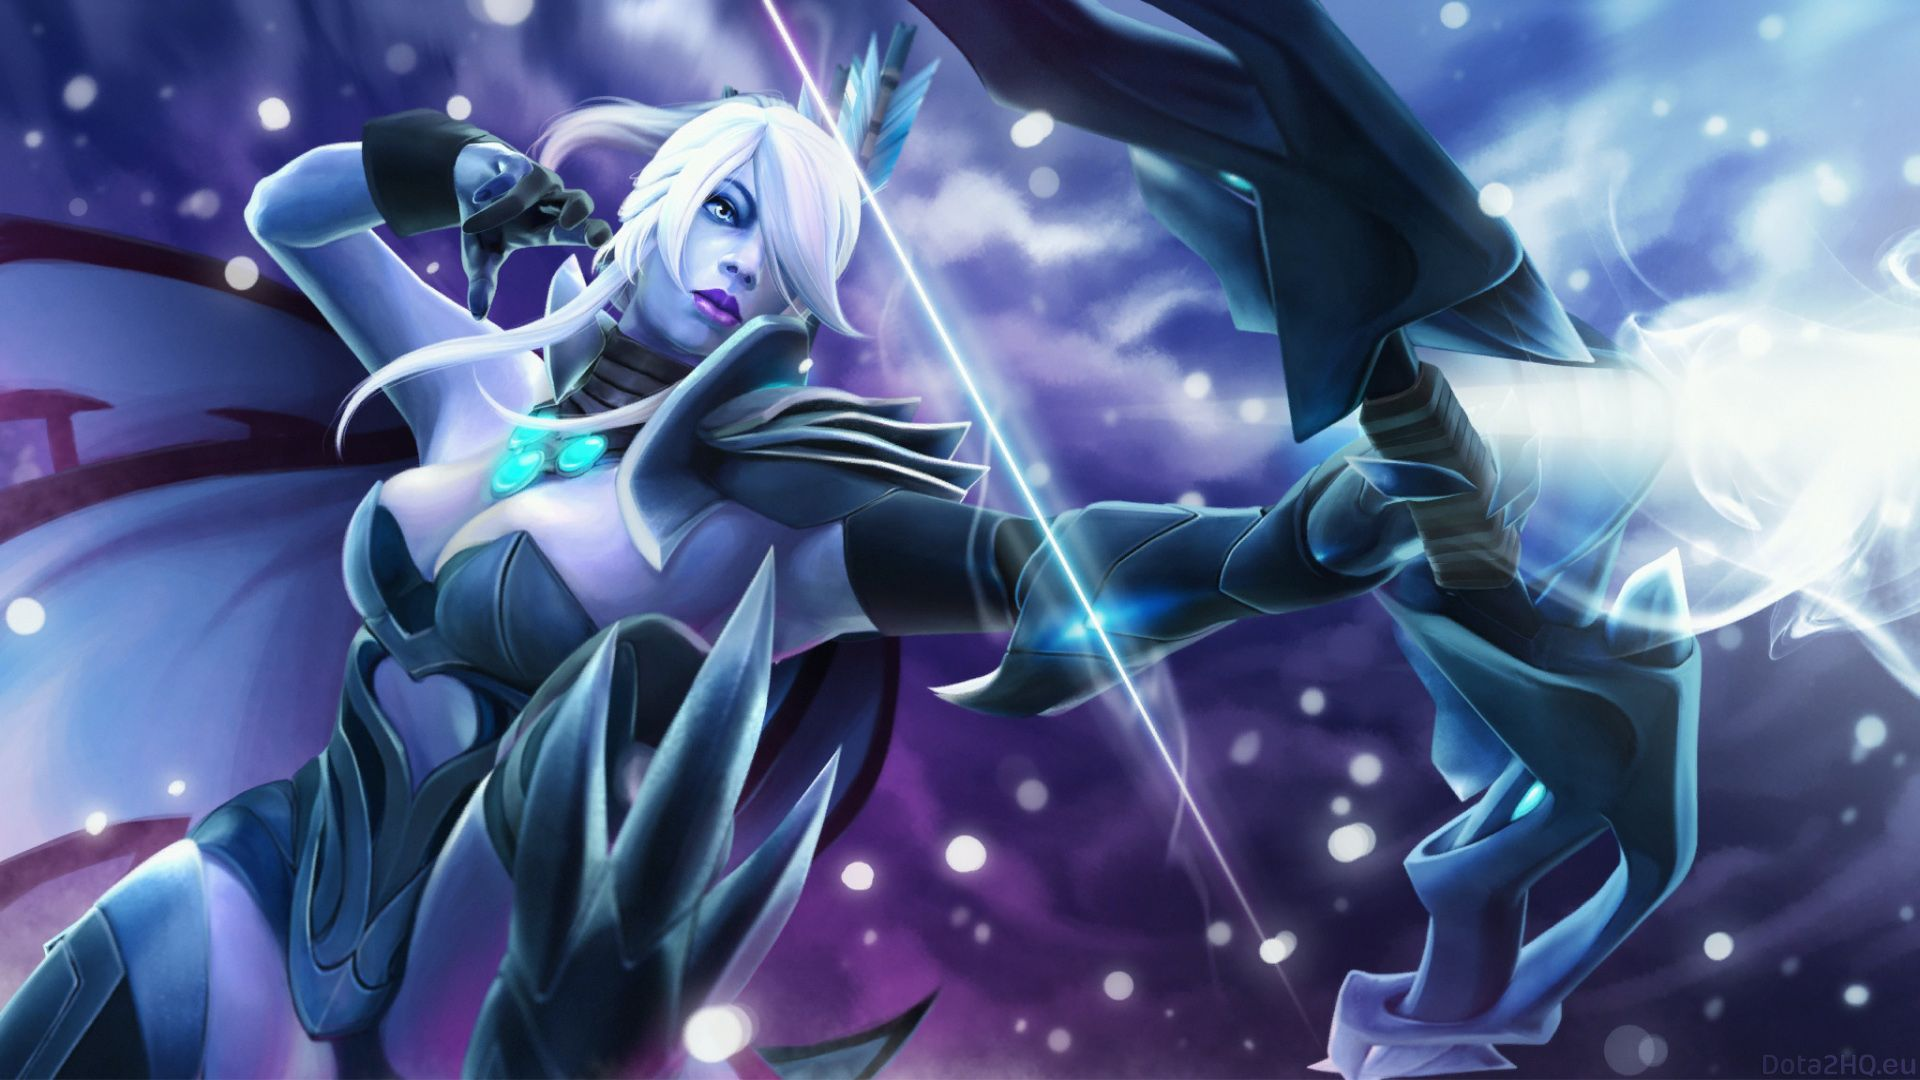 The Wallpaper Depicts The Heroes Of Dota Drow Ranger